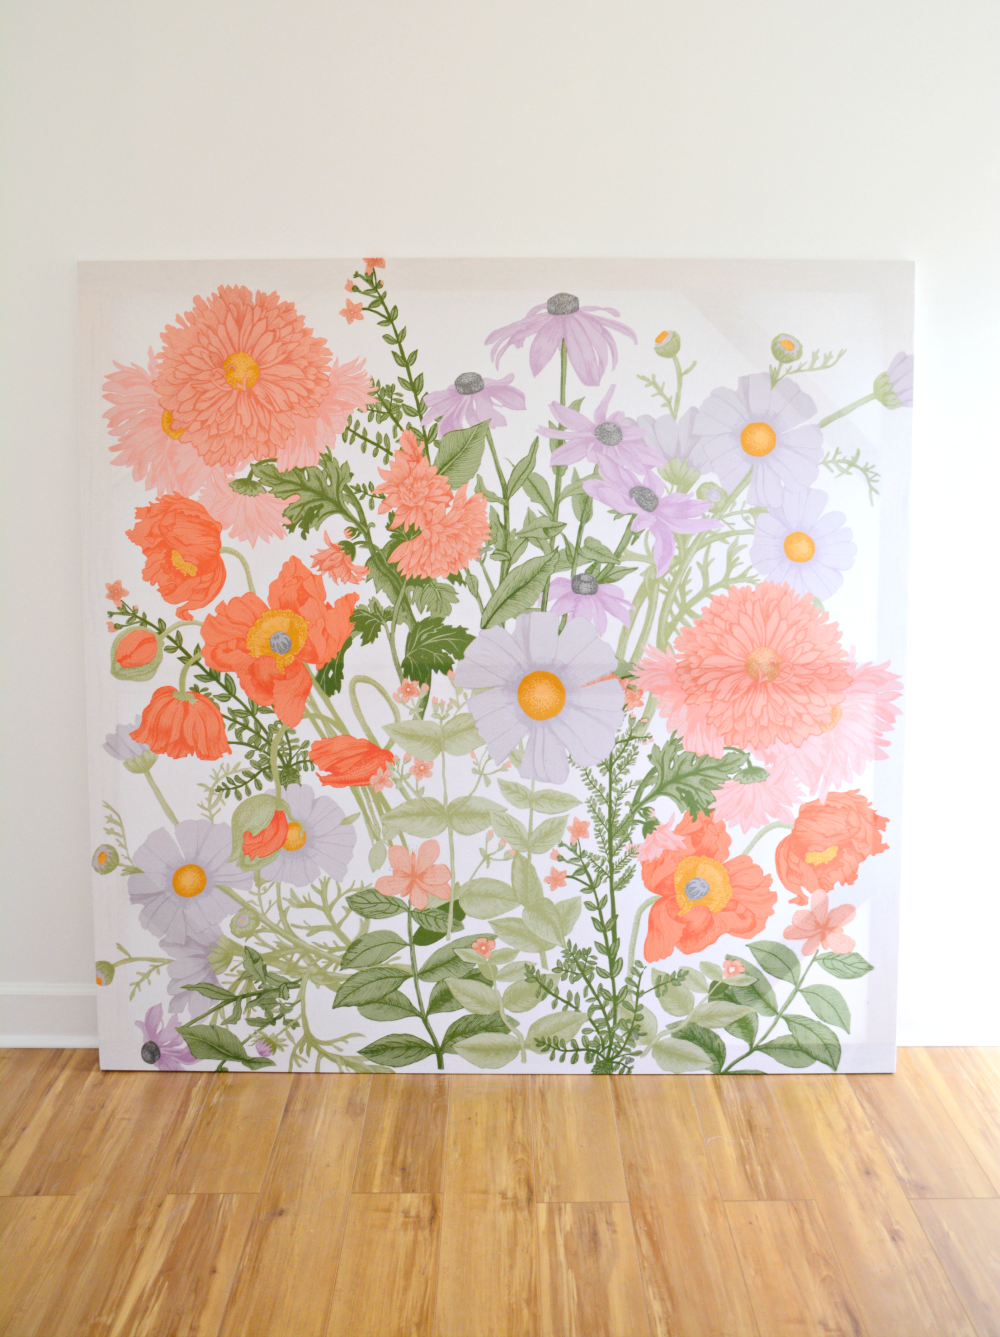 Diy Large Scale Wall Art From Cotton Shower Curtain One Room Challenge Week 5